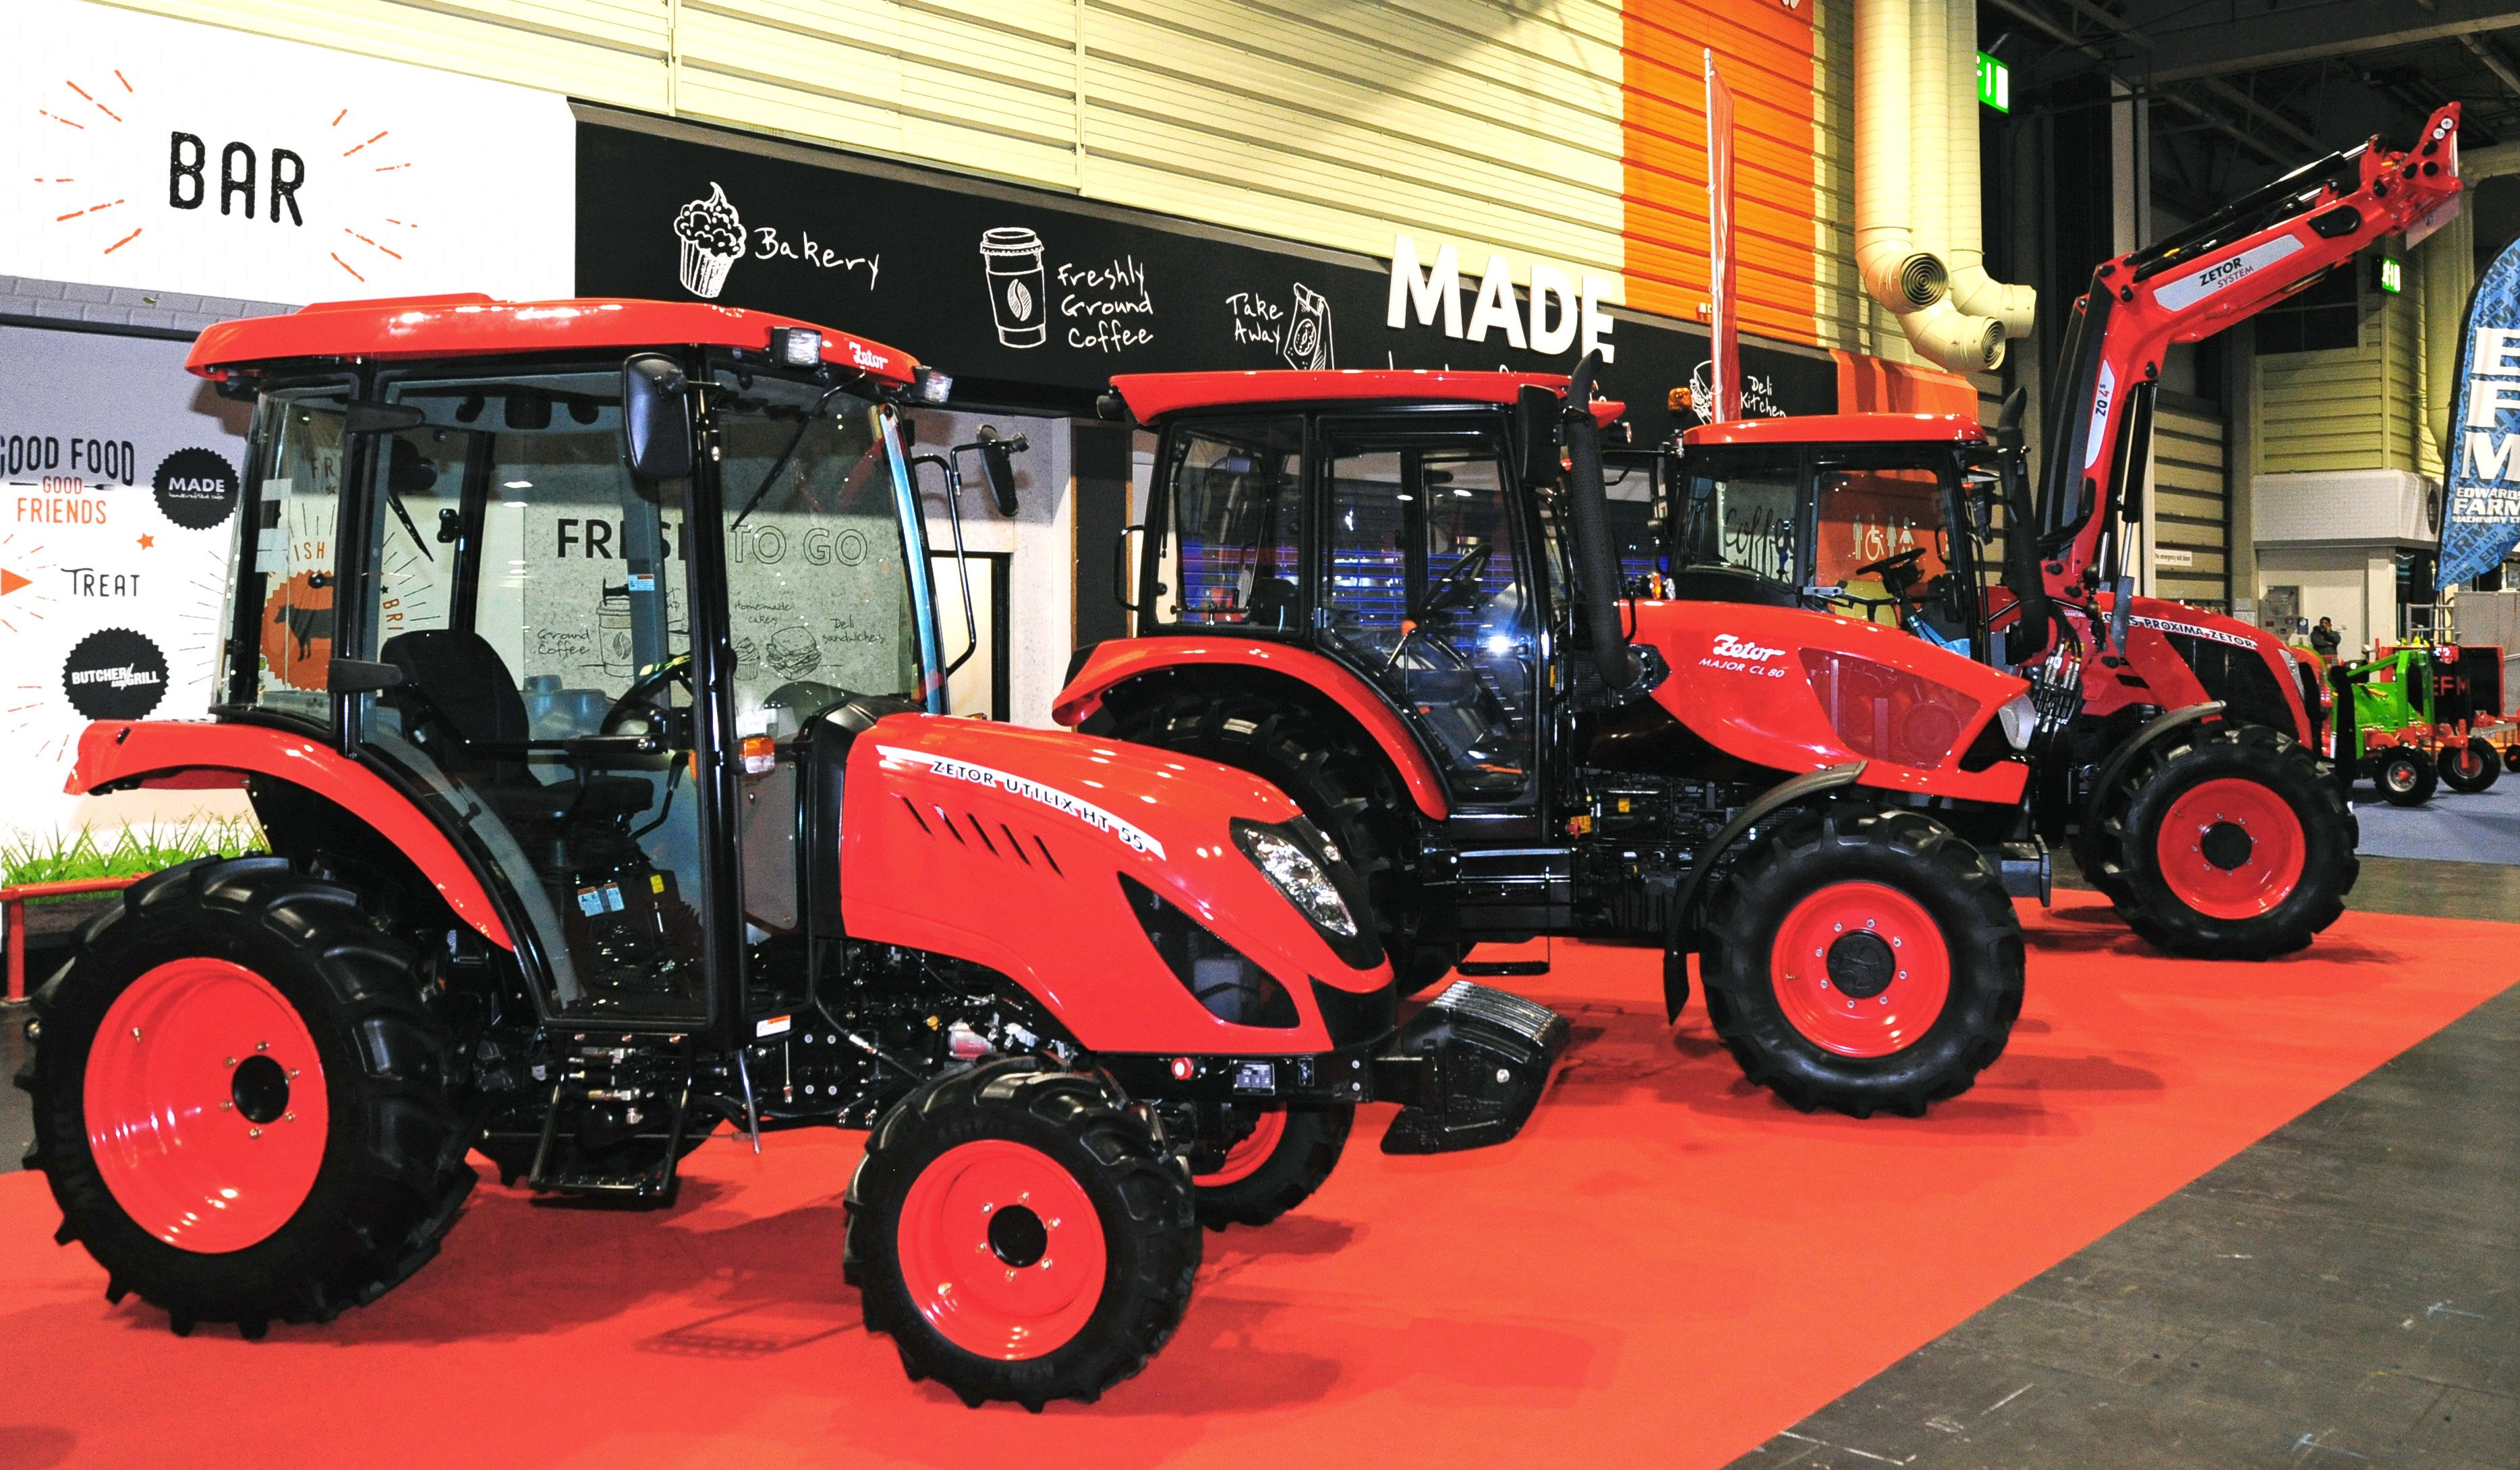 Zetor records a loss in 2018 amidst 'challenging' market